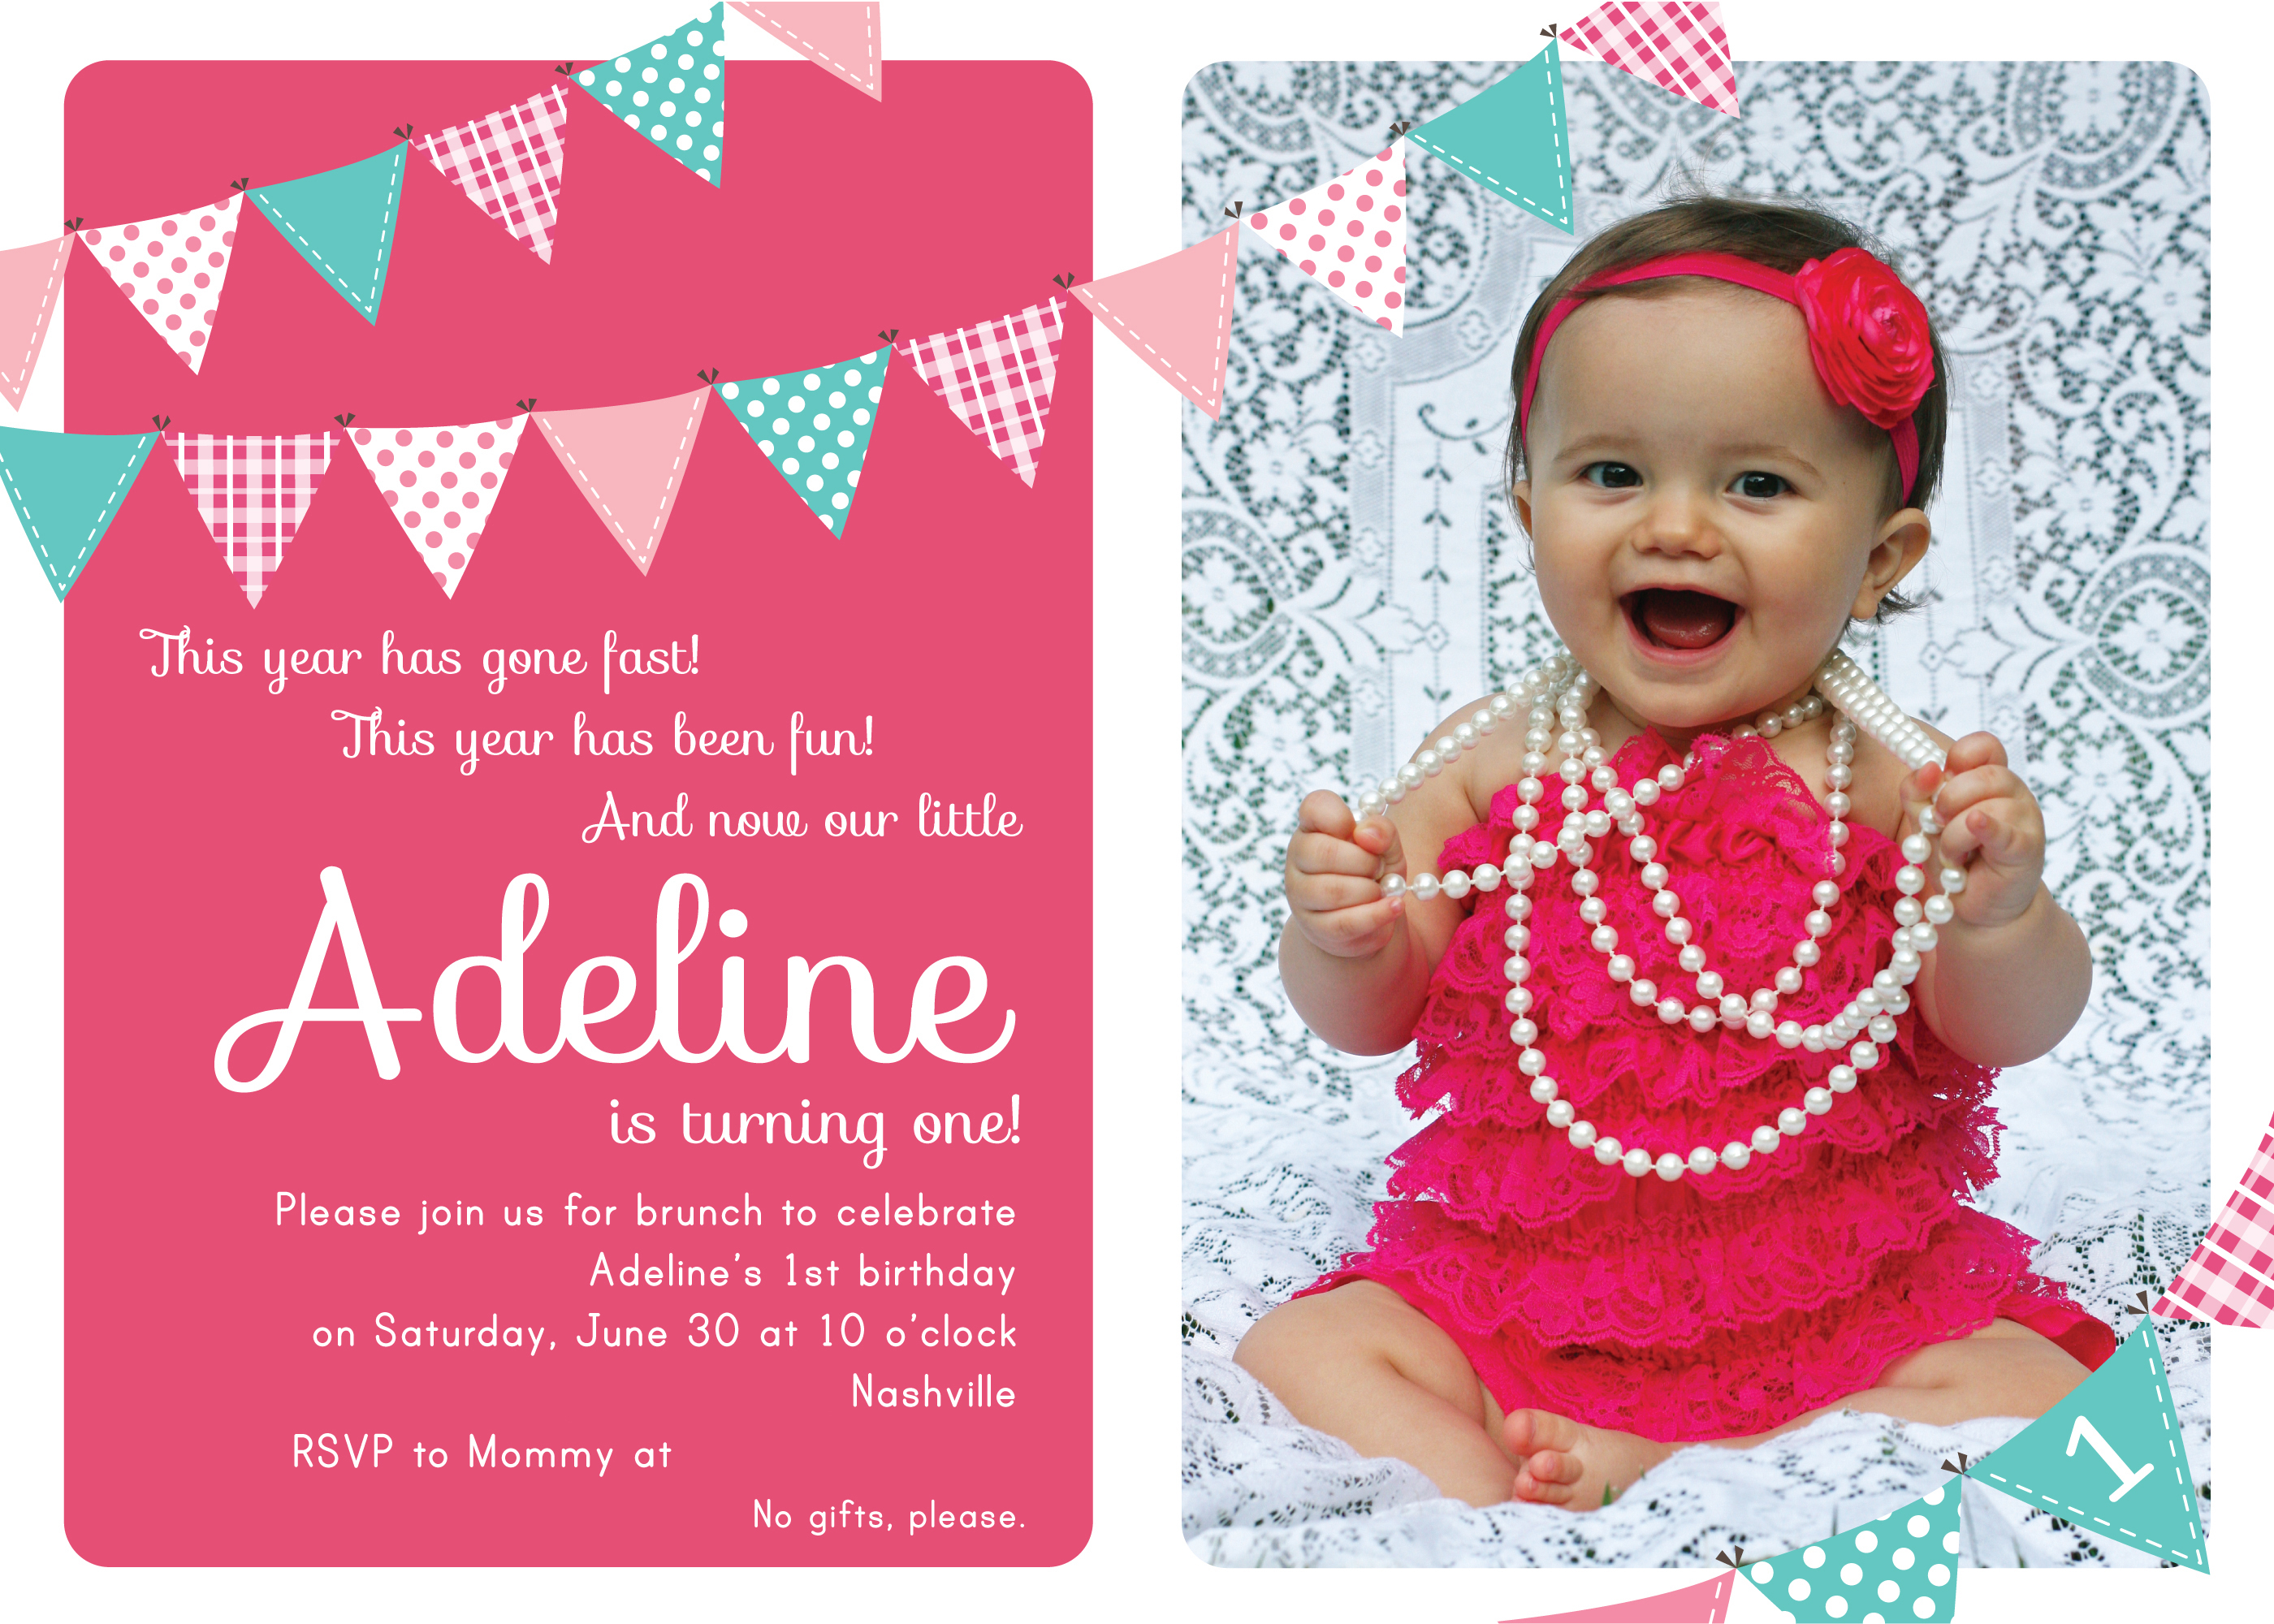 birthday design invitations ; the-first-birthday-invitations-girl-free-with-alluring-layout-best-first-birthday-invitations-girl-designs-ideas-silverlininginvitations